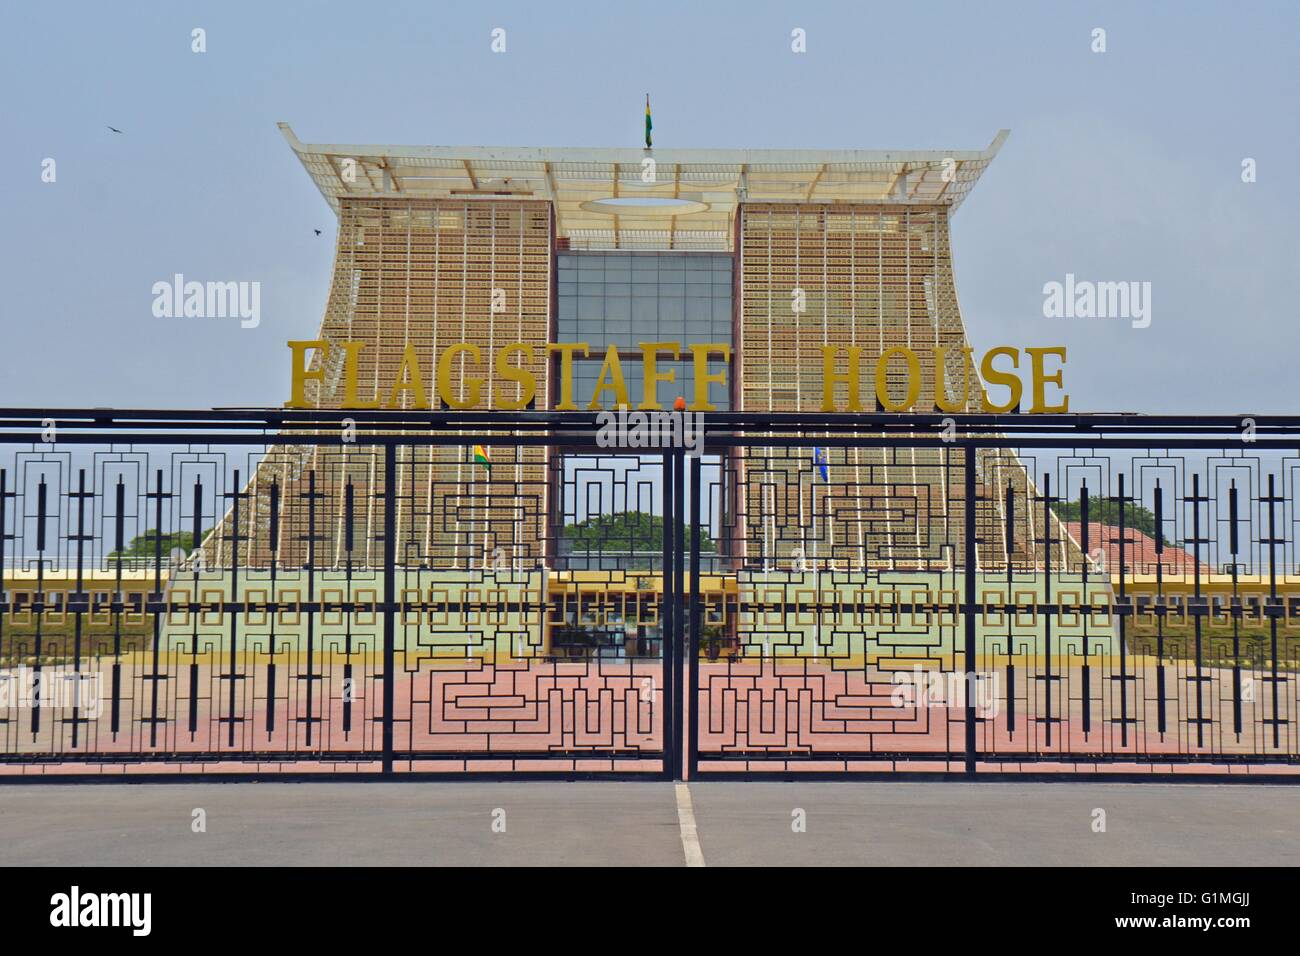 Accra, Ghana - Flag Staff House, of the president of the Republic of Ghana, main gate, front view - Stock Image